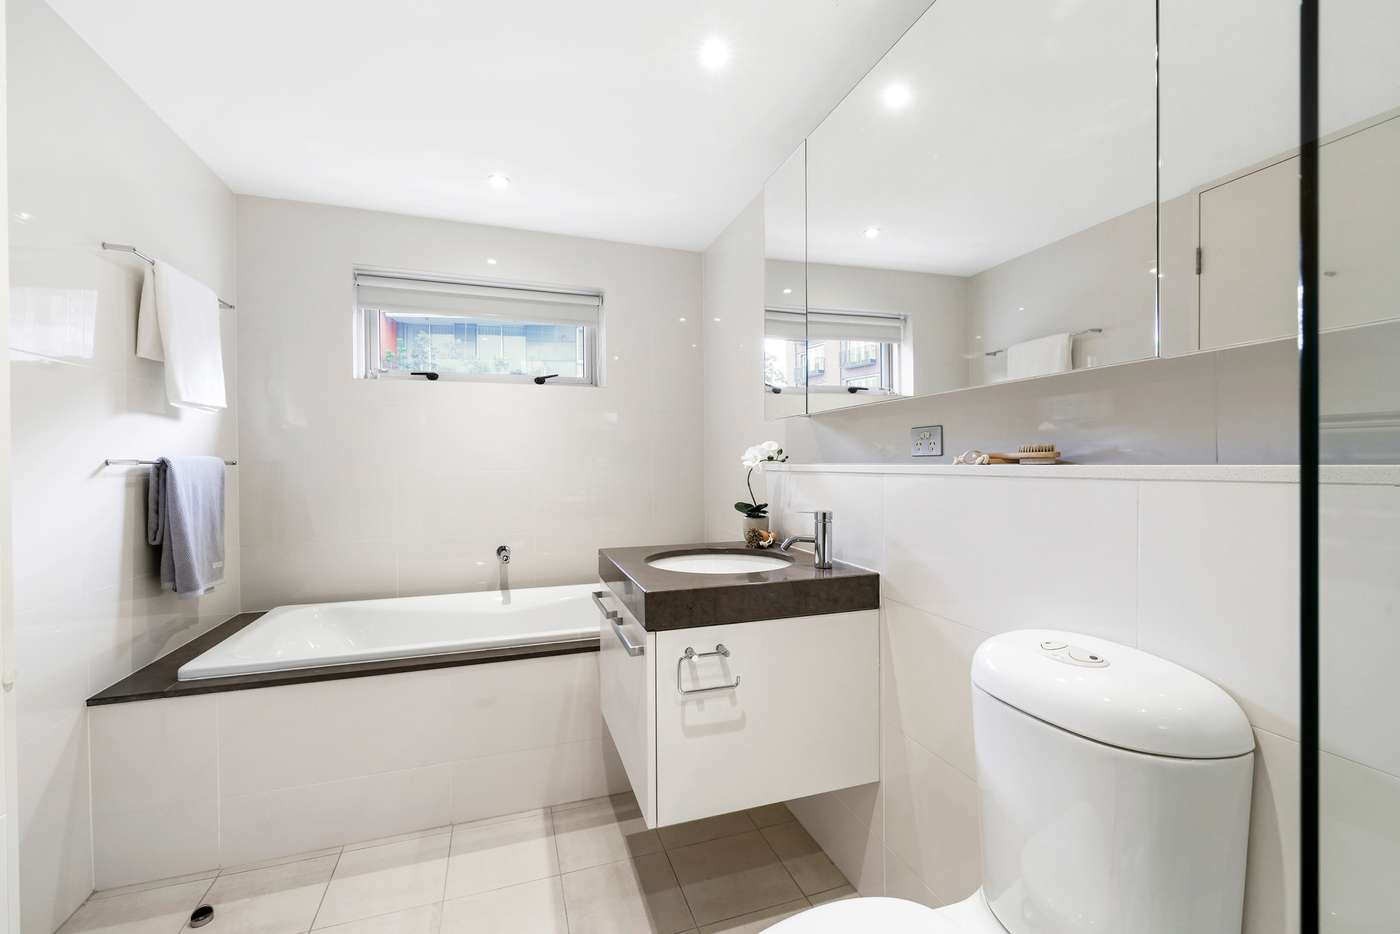 Sixth view of Homely apartment listing, 131/3 Darling Island Road, Pyrmont NSW 2009